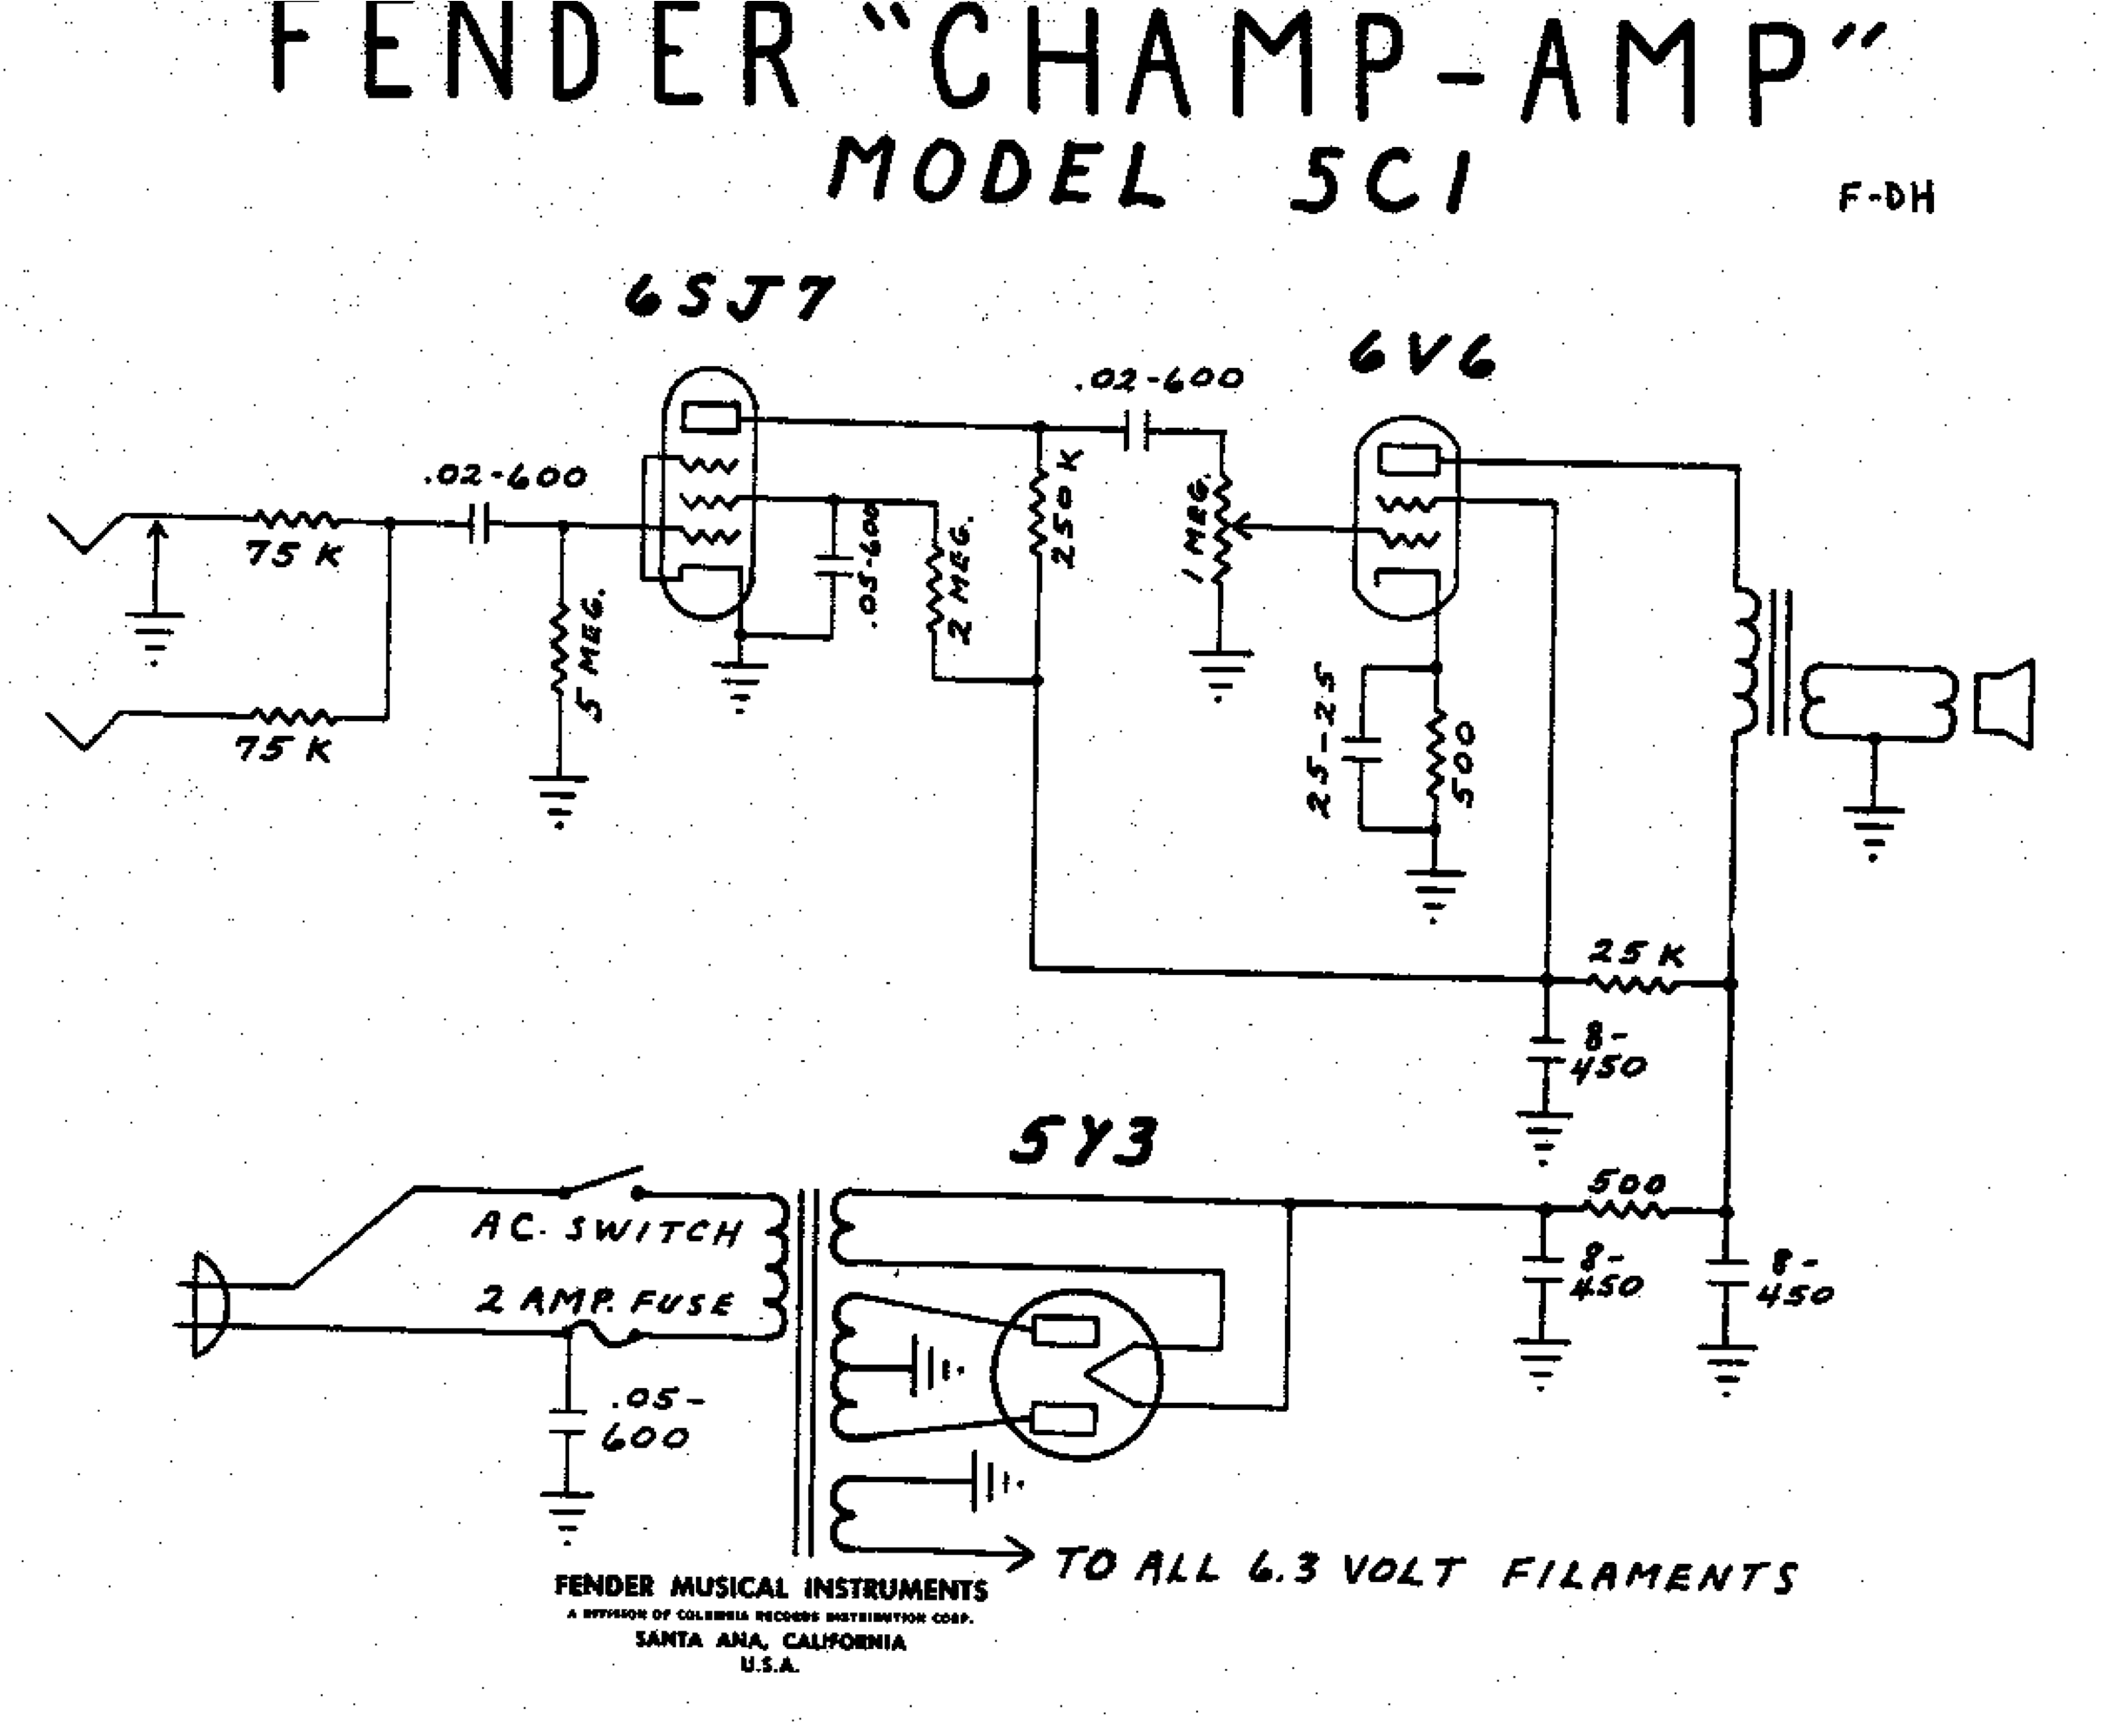 Fender Champ 5C1 Wiring Diagram | My Fender Champ | Vintage Amps on